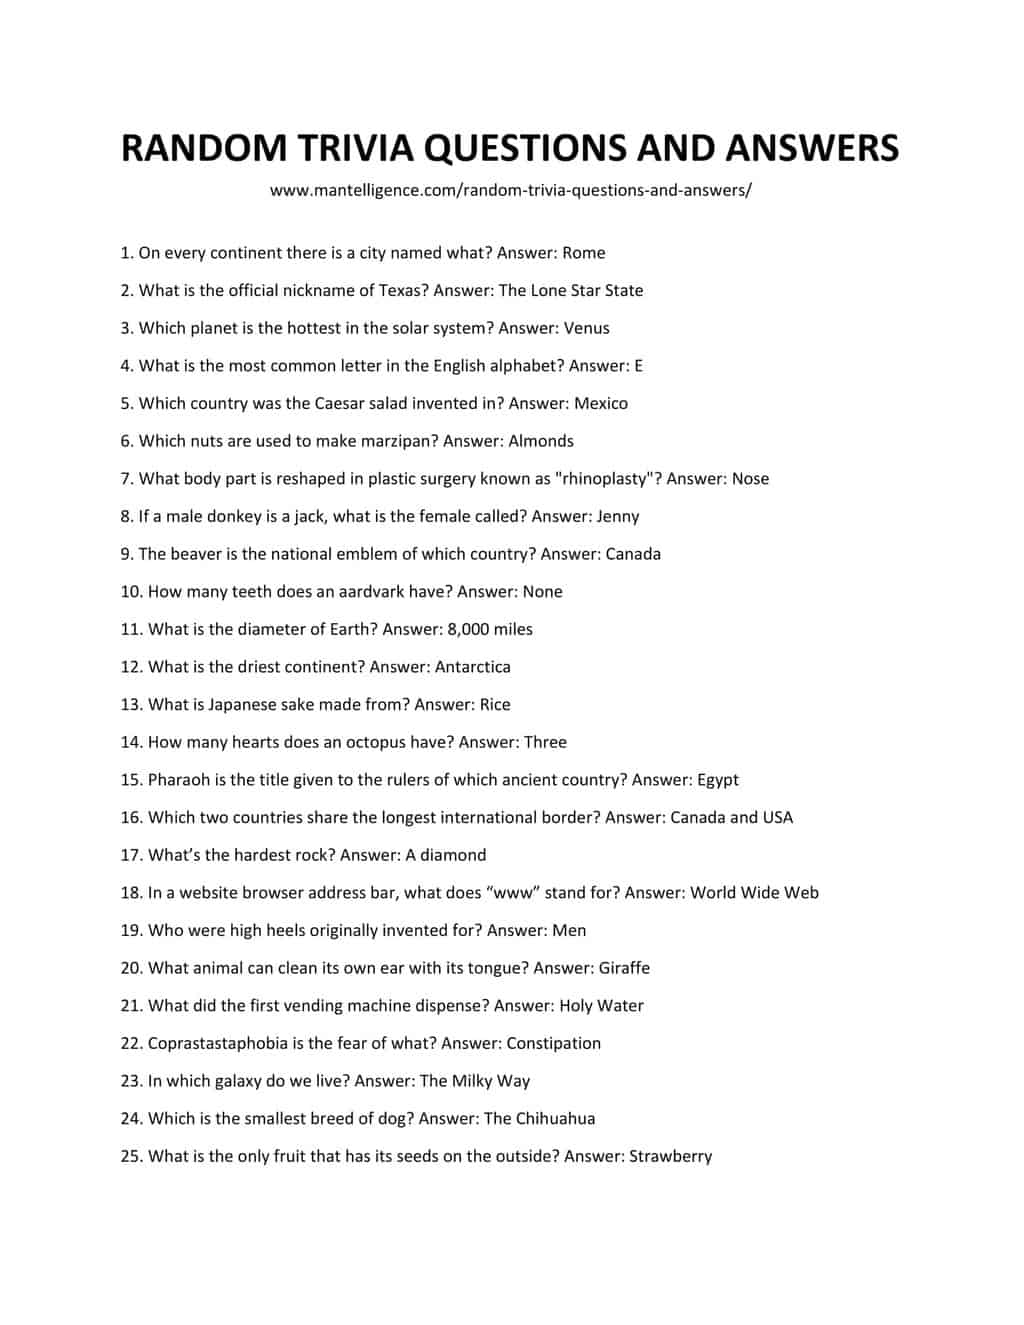 Downloadable and Printable List of Random Trivia Questions and Answers